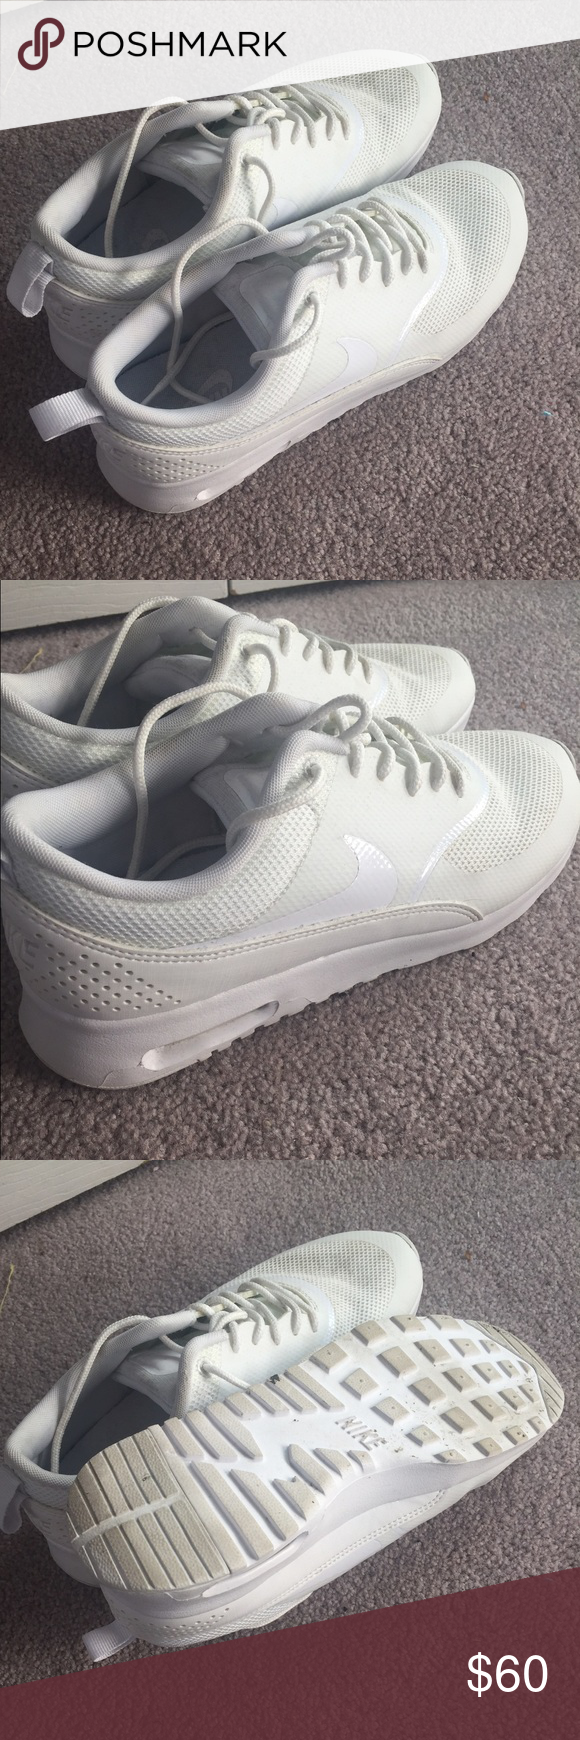 how to clean nike air max thea